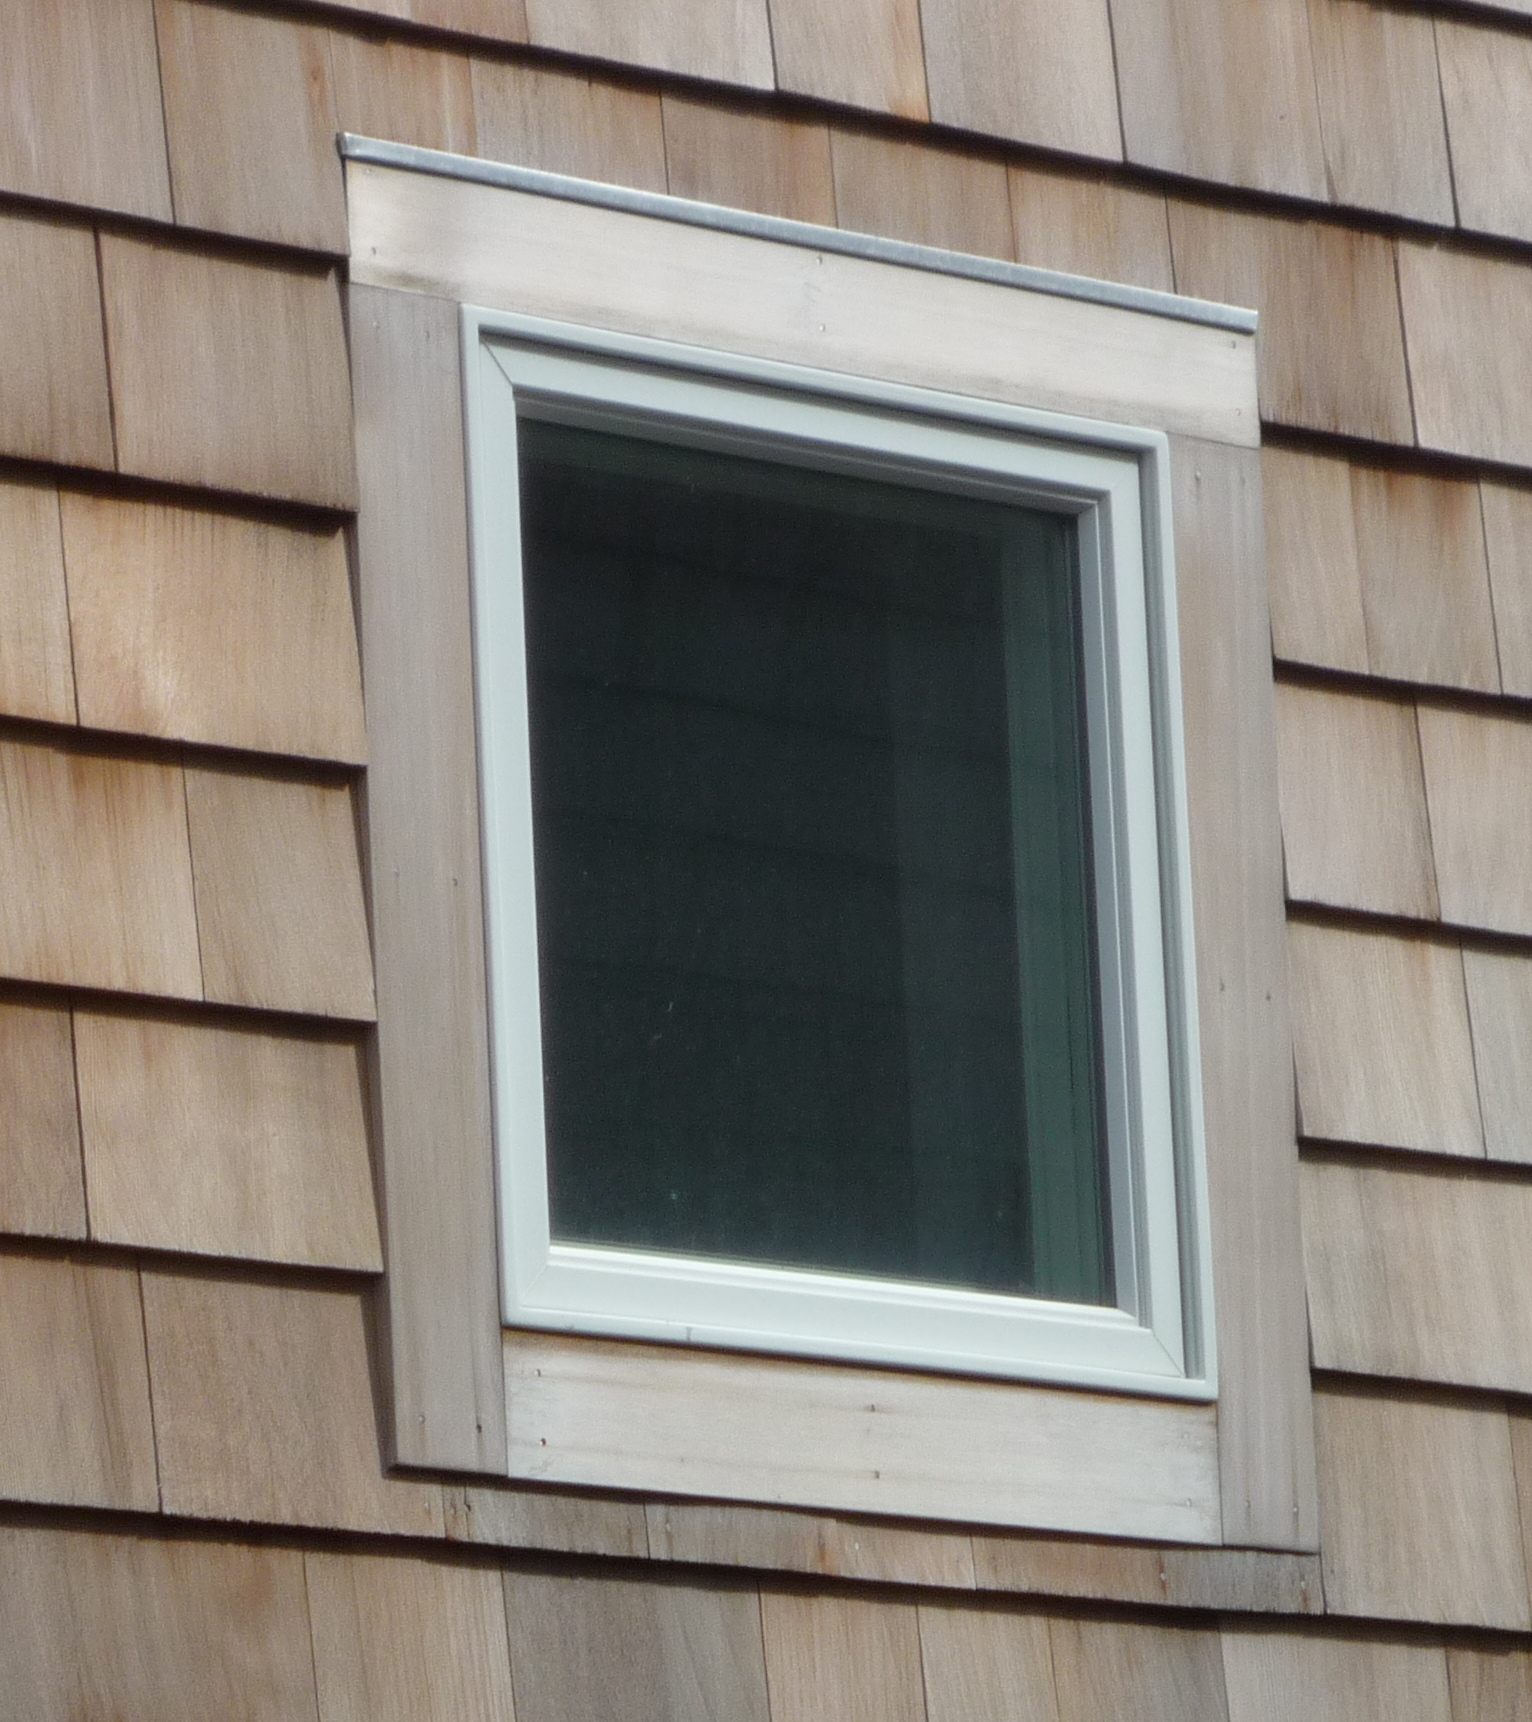 Montauk addition framing and exterior trim decisions for Decorative window trim exterior